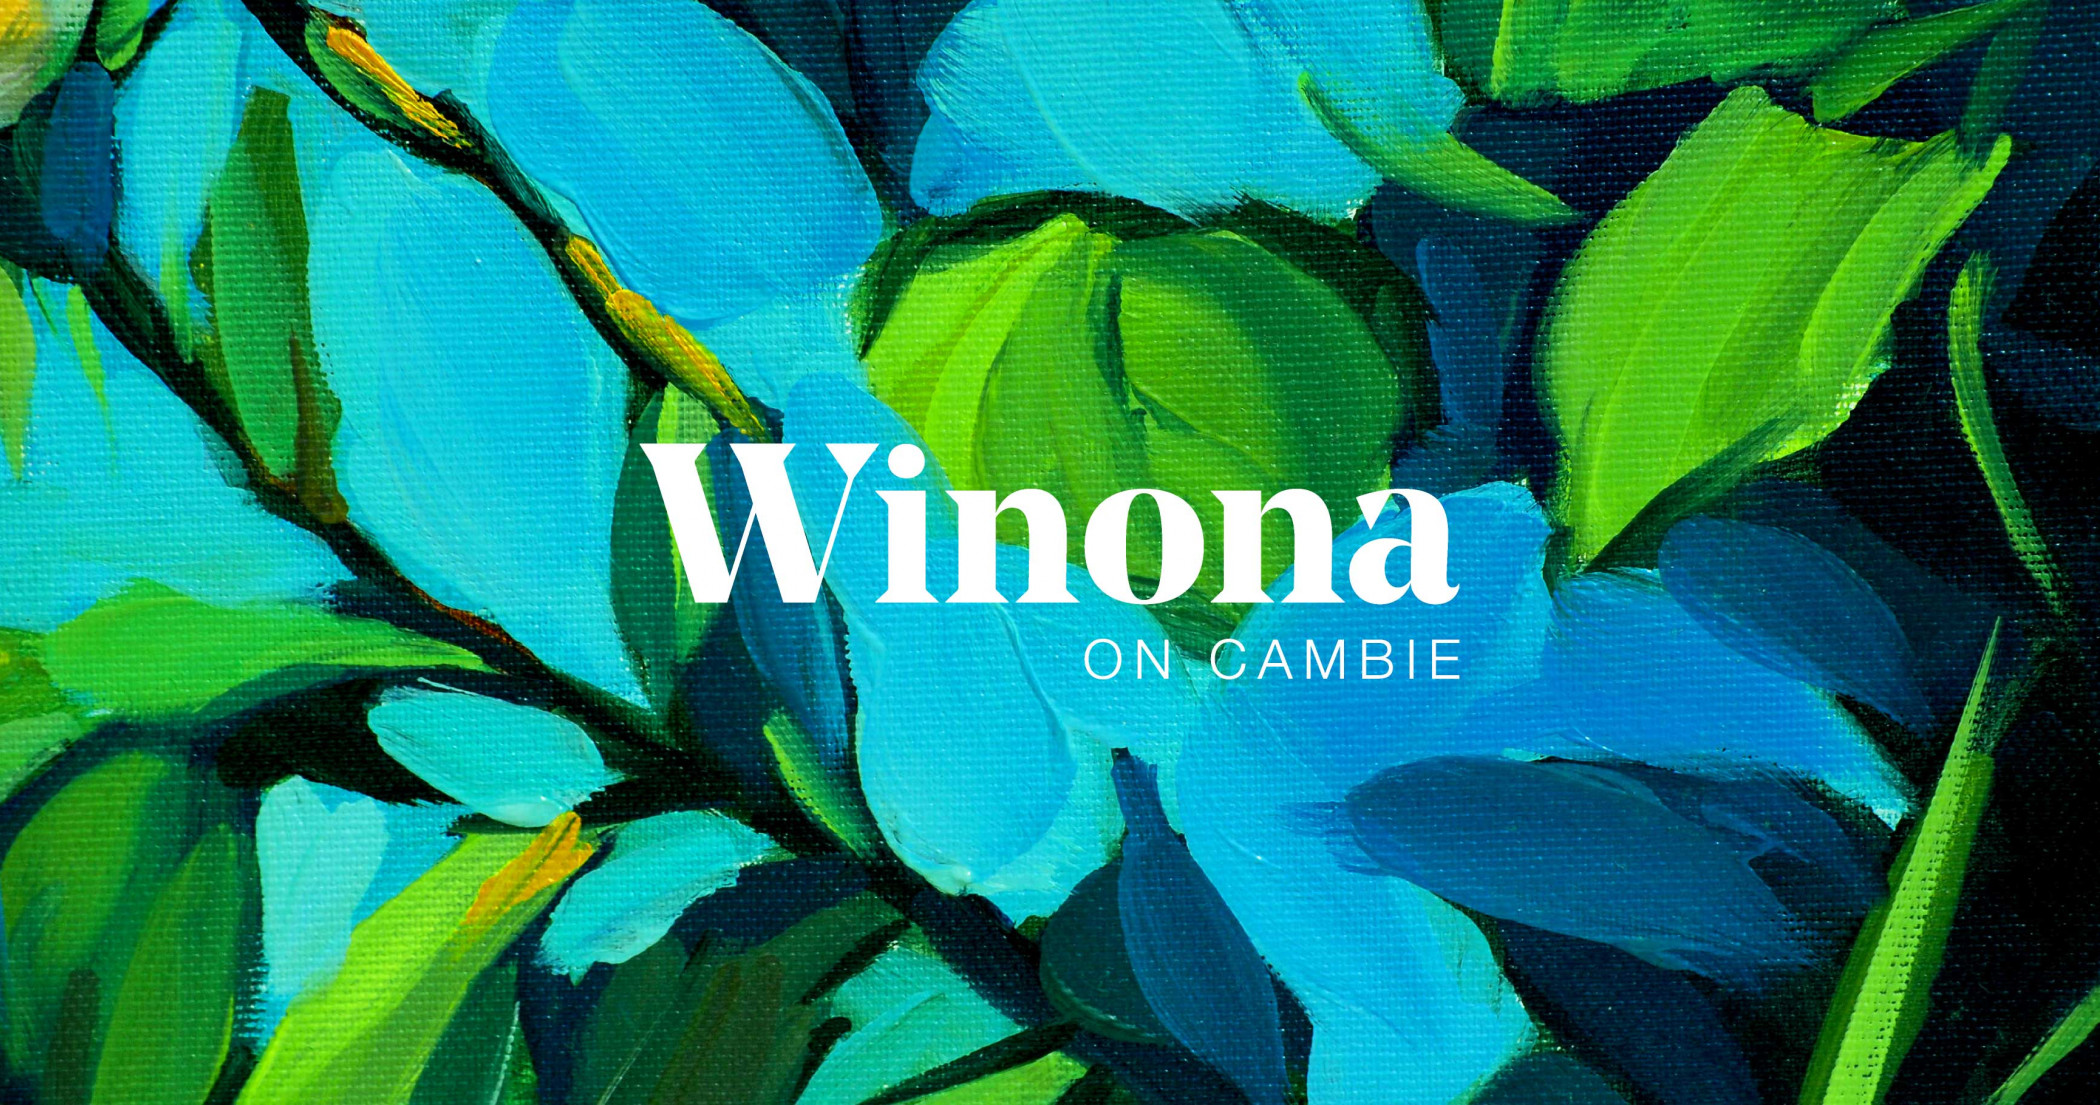 Winona on Cambie title graphic.